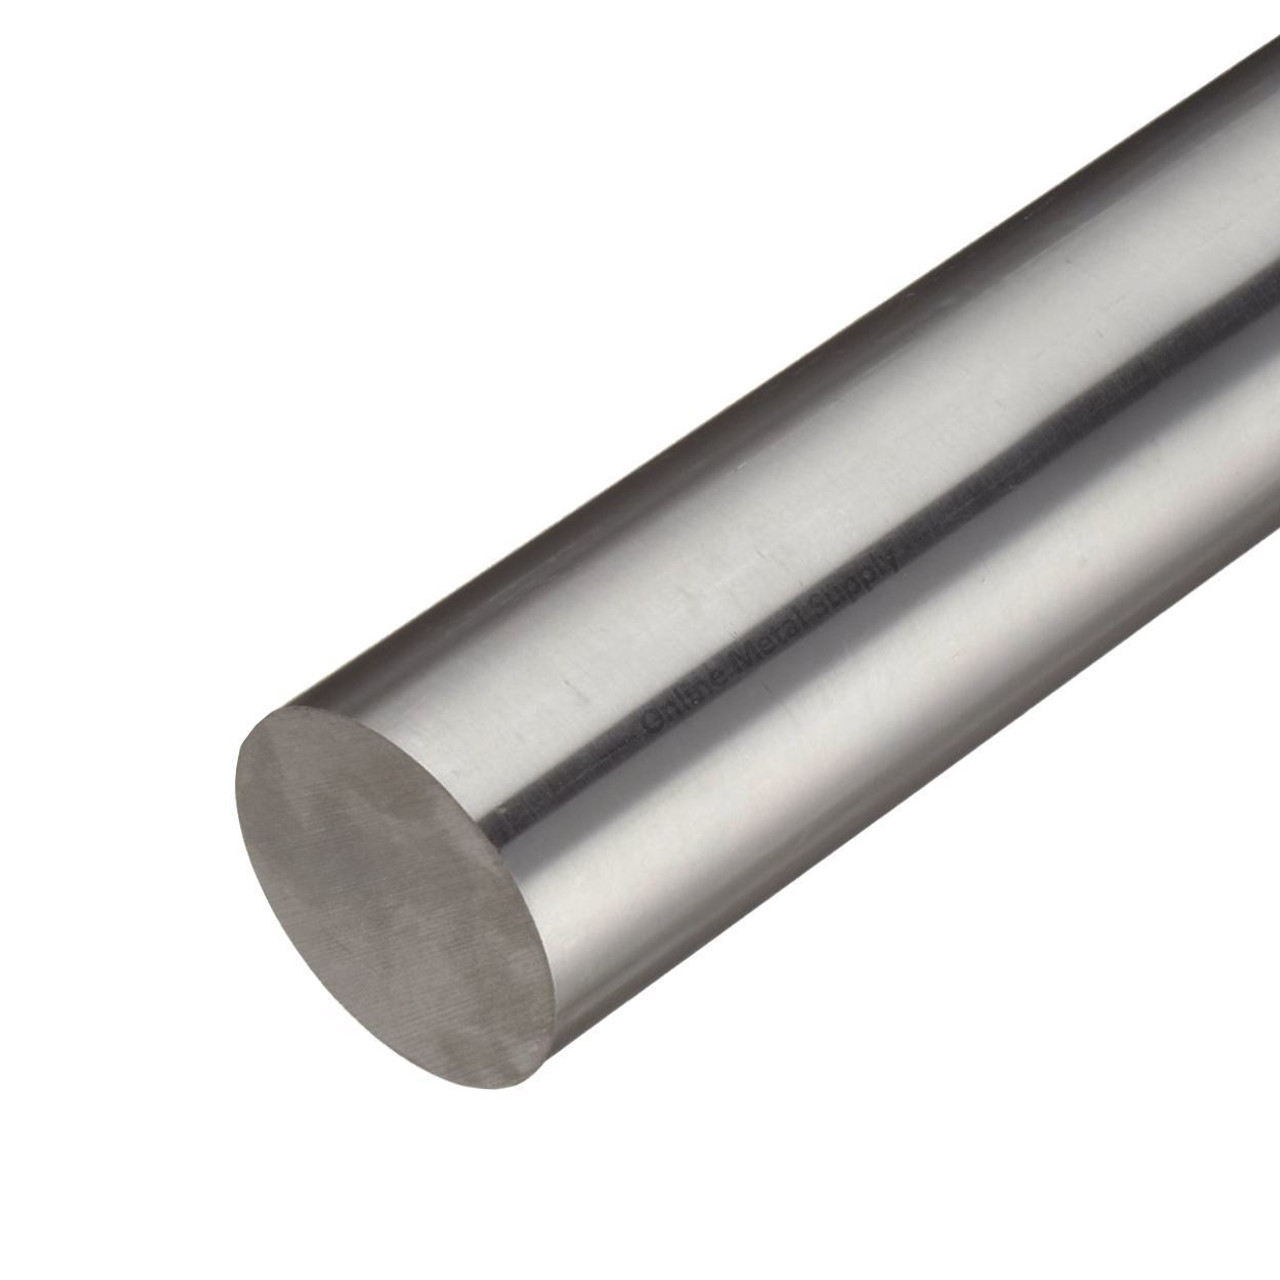 2.250 (2-1/4 inch) x 12 inches, 17-4 H1150 CF Stainless Steel Round Rod